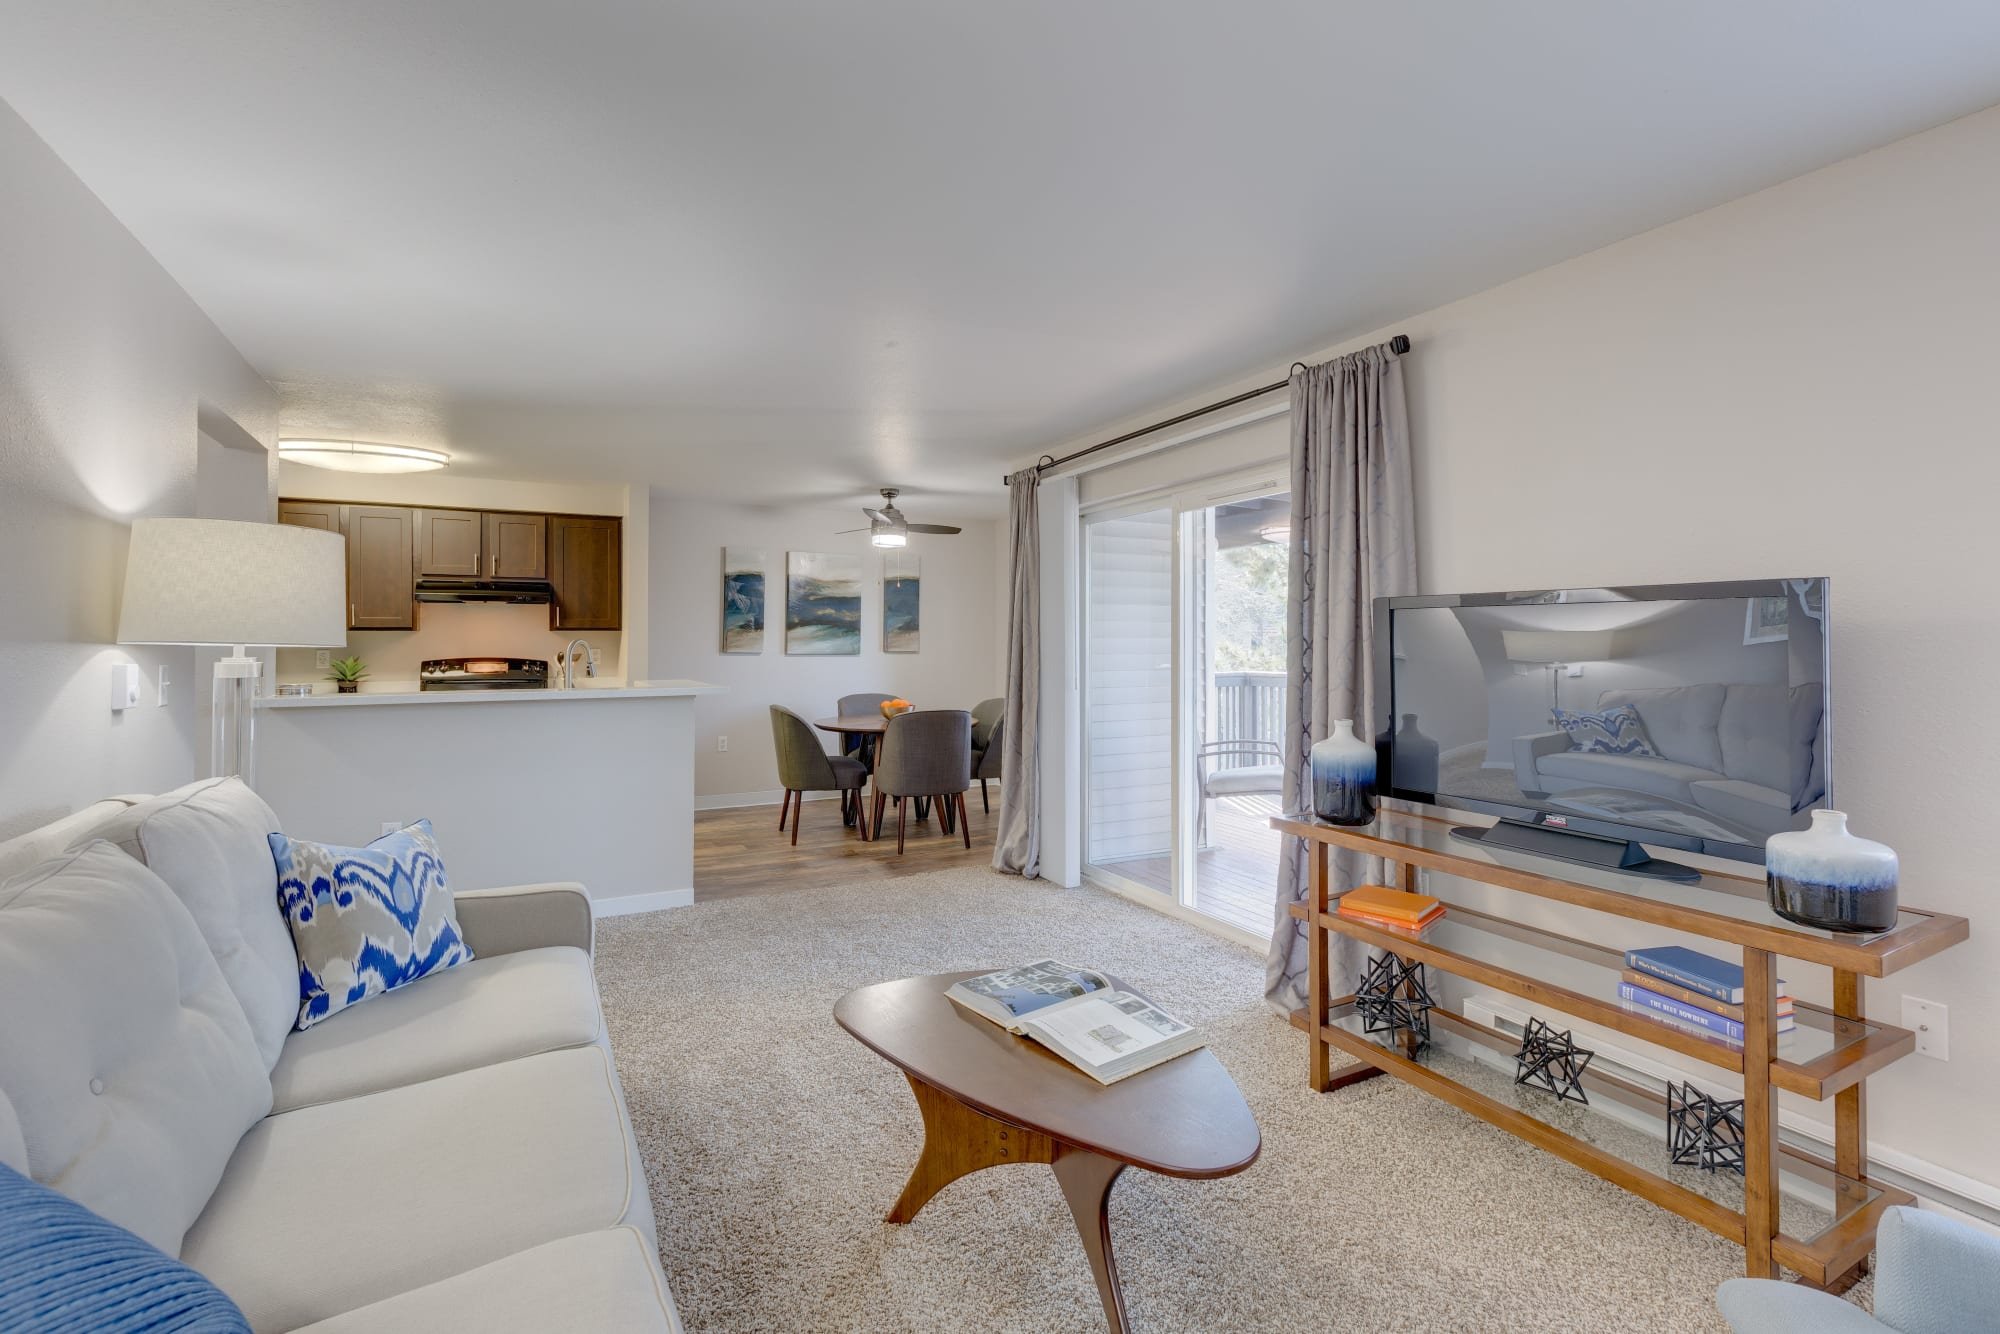 A fully furnished living room with flat screen television and modern furniture at Cascade Ridge in Silverdale, Washington